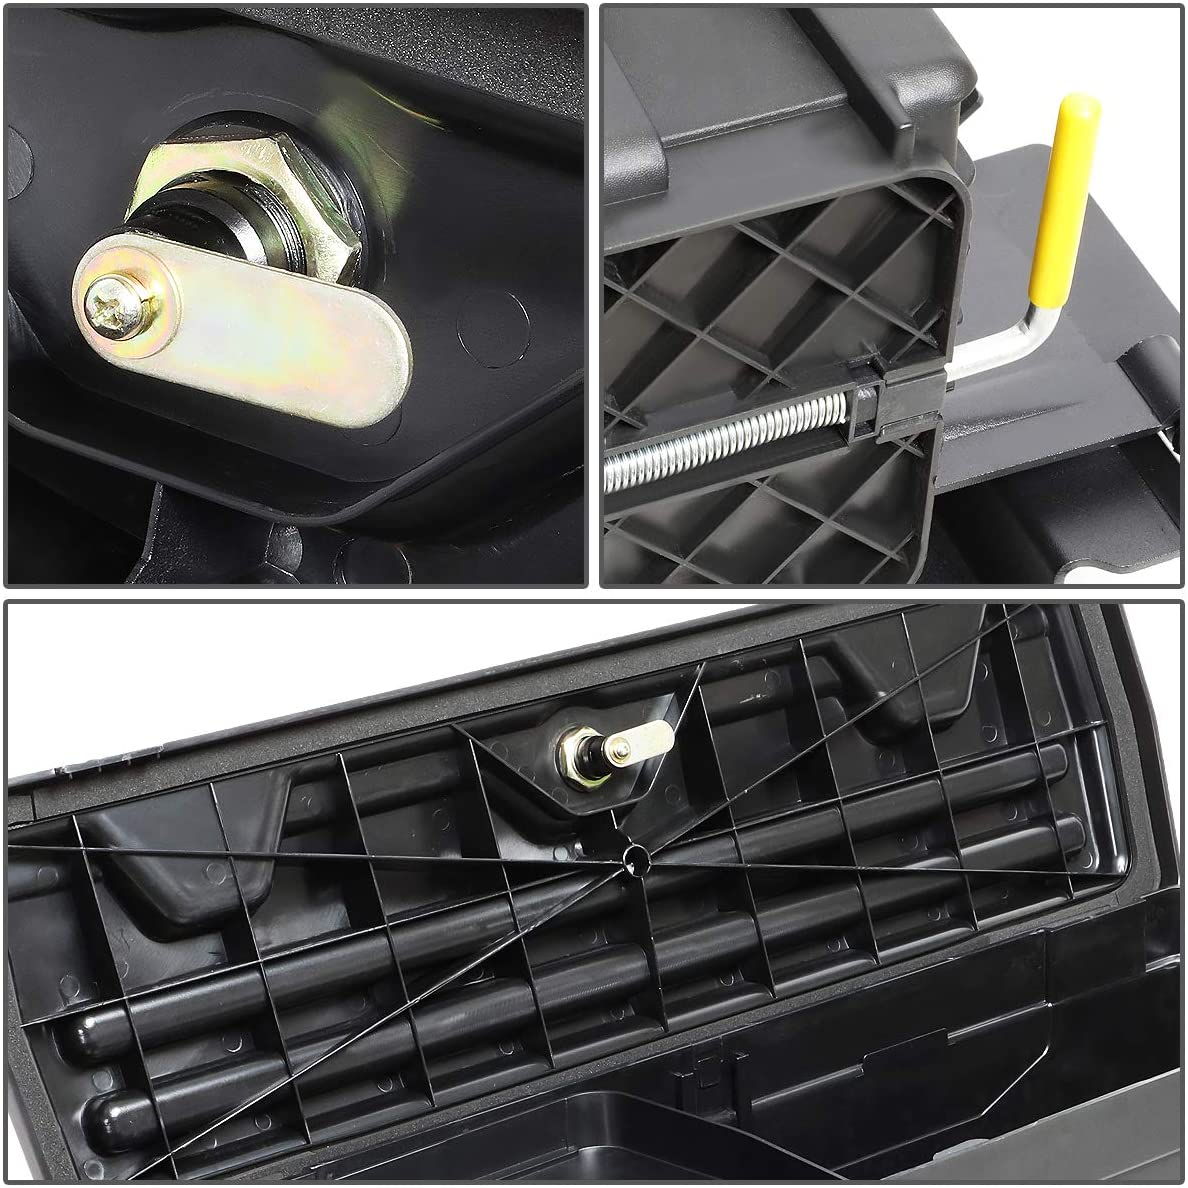 DNA MOTORING ZTL-Y-0103 Truck Bed Wheel Well Storage Case Tool Box w//Lock Right Side For 15-20 F-150 Black